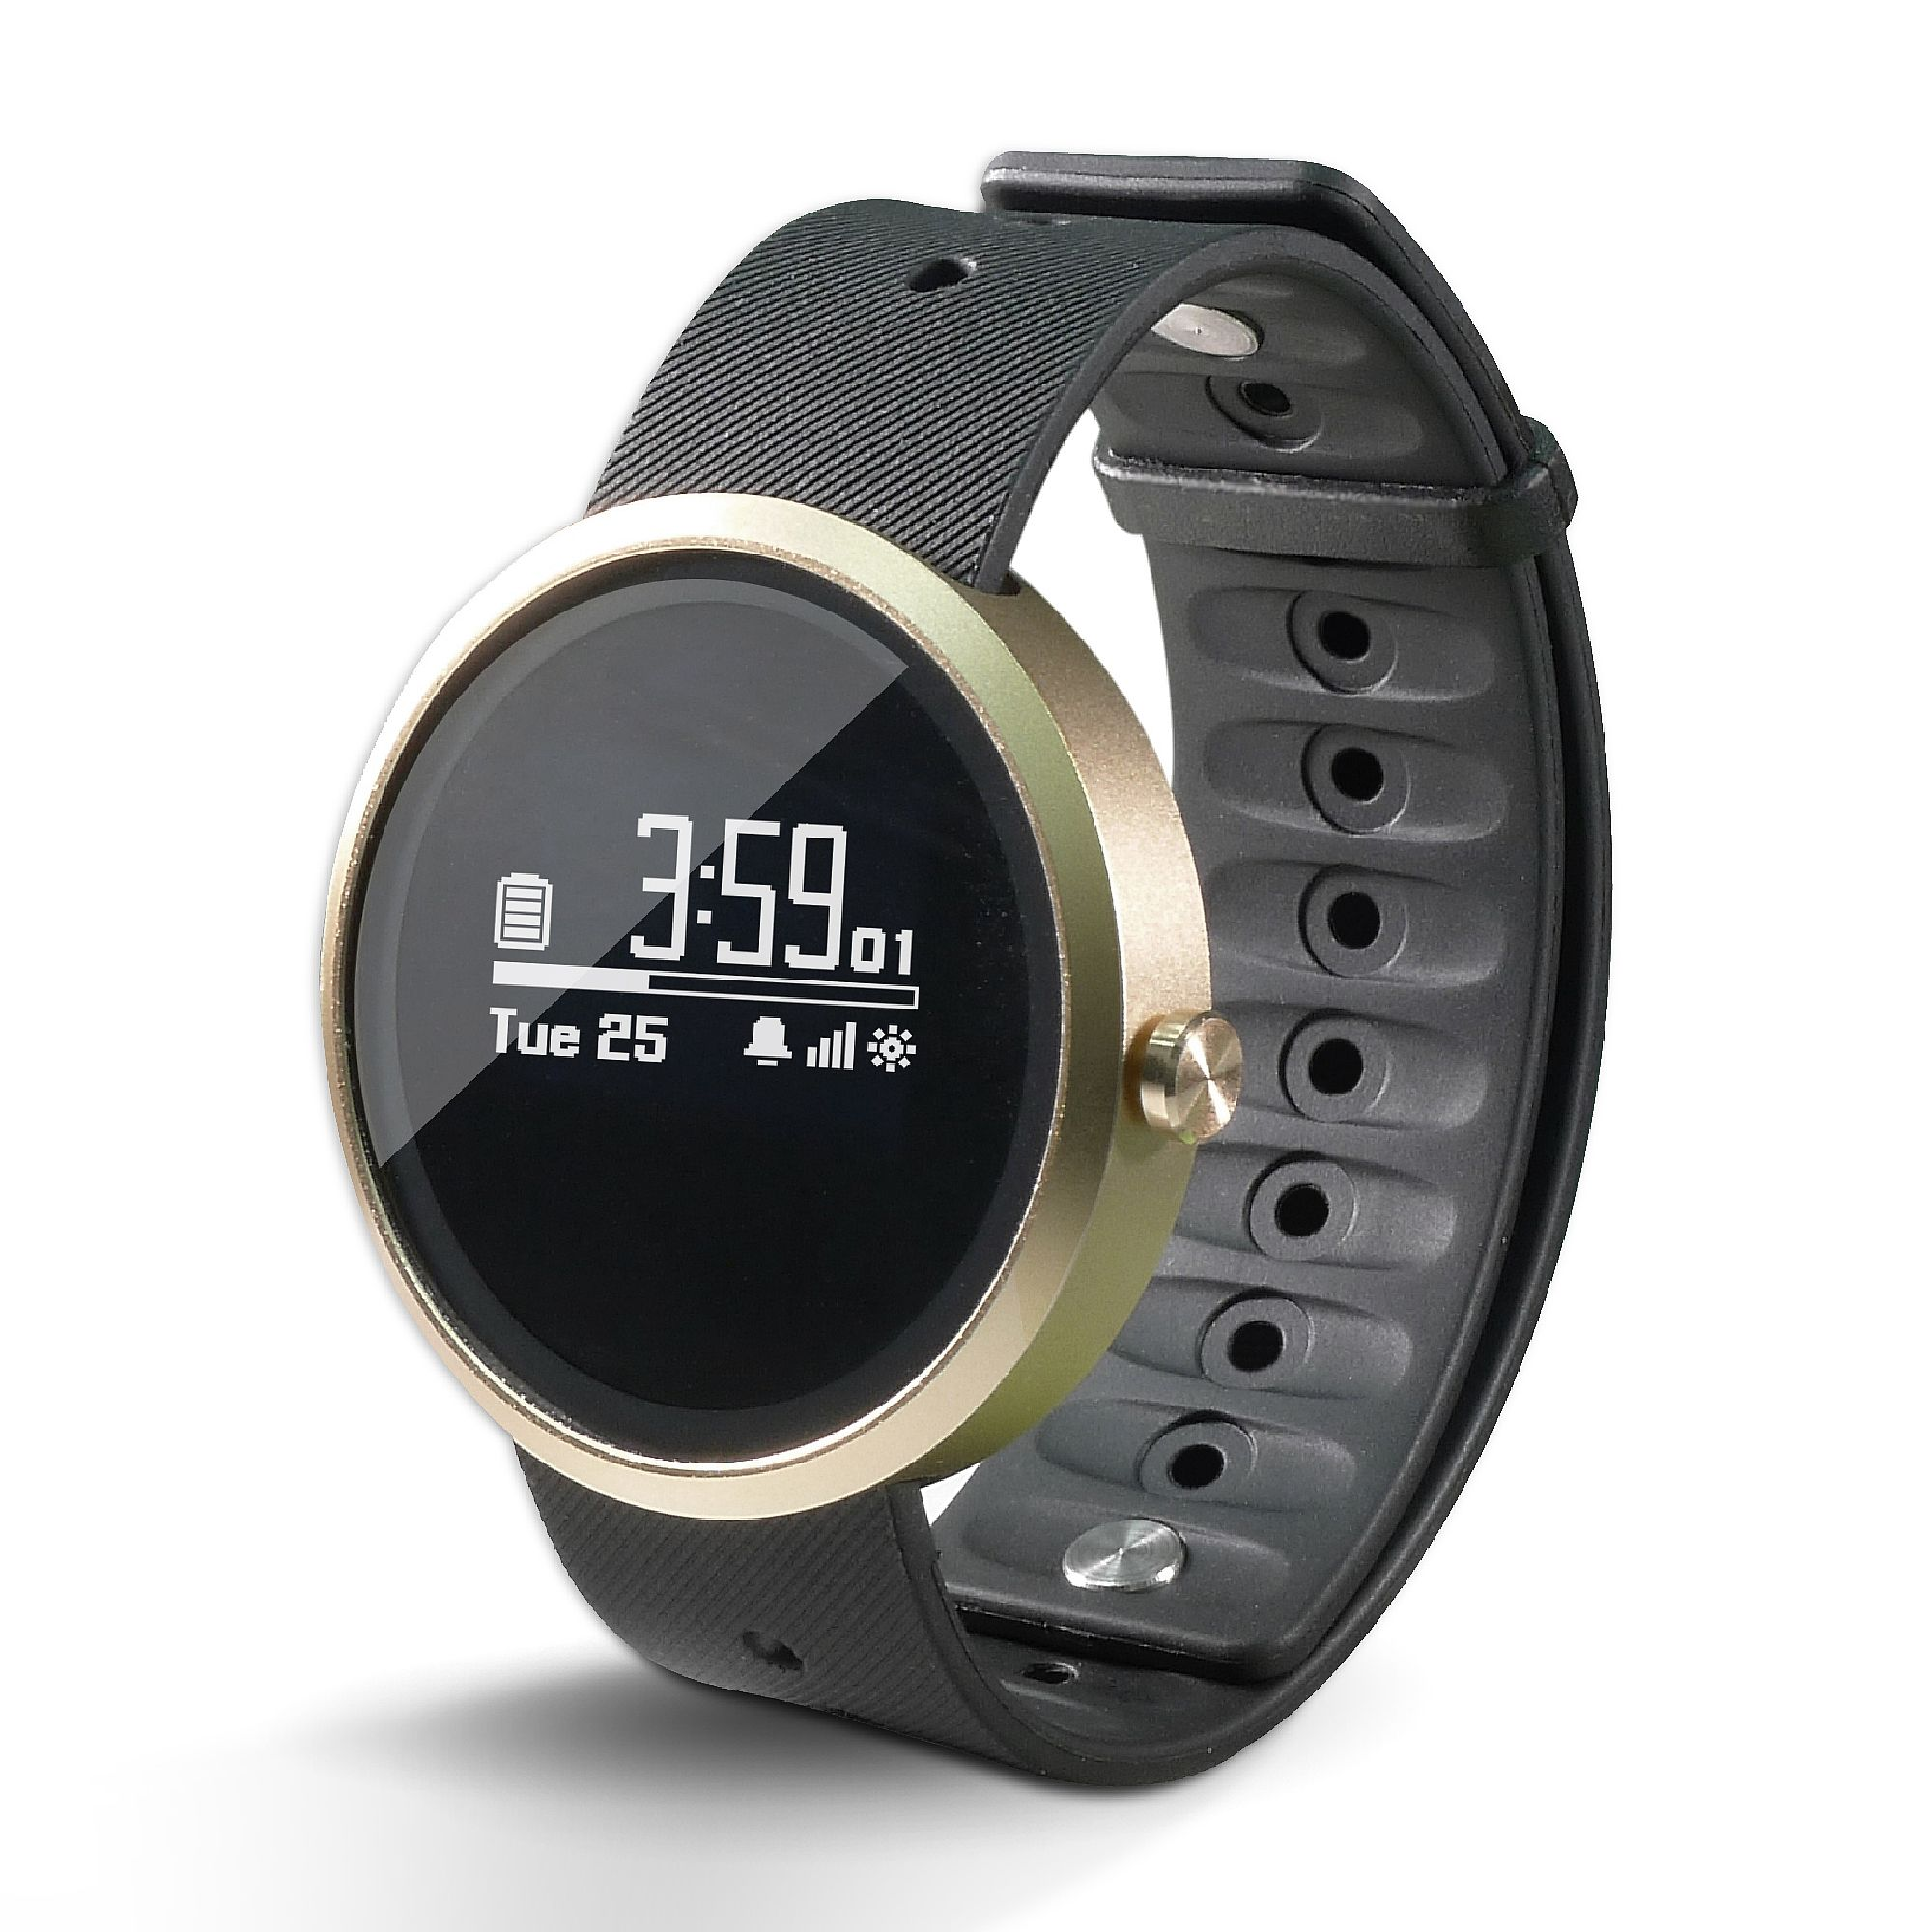 fossil coming watches smart are news os from new smartwatches wear techradar seven soon